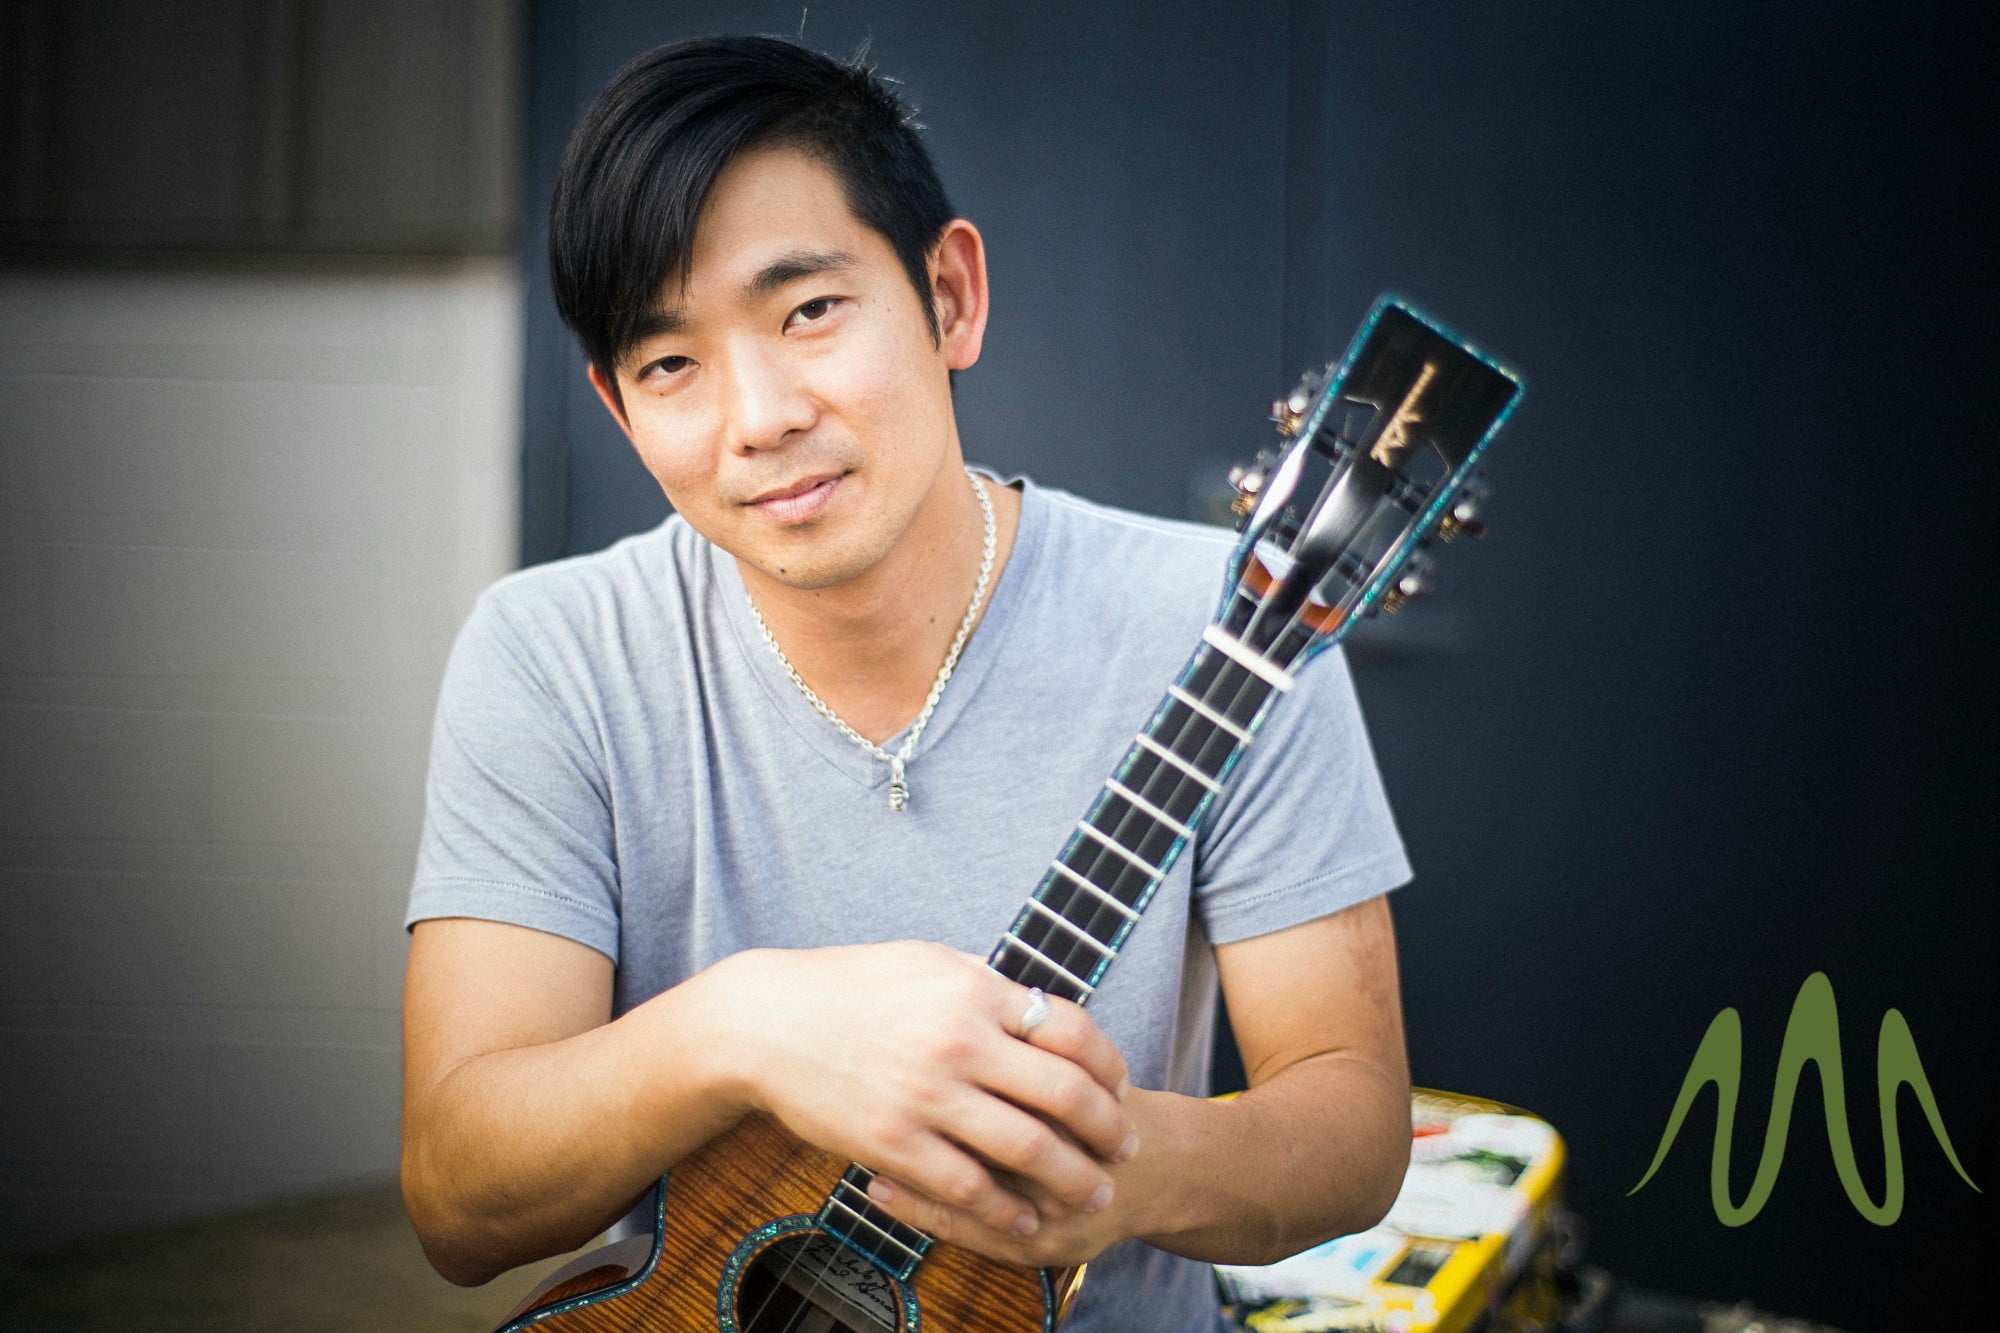 Jake Shimabukuro: My First Ukulele